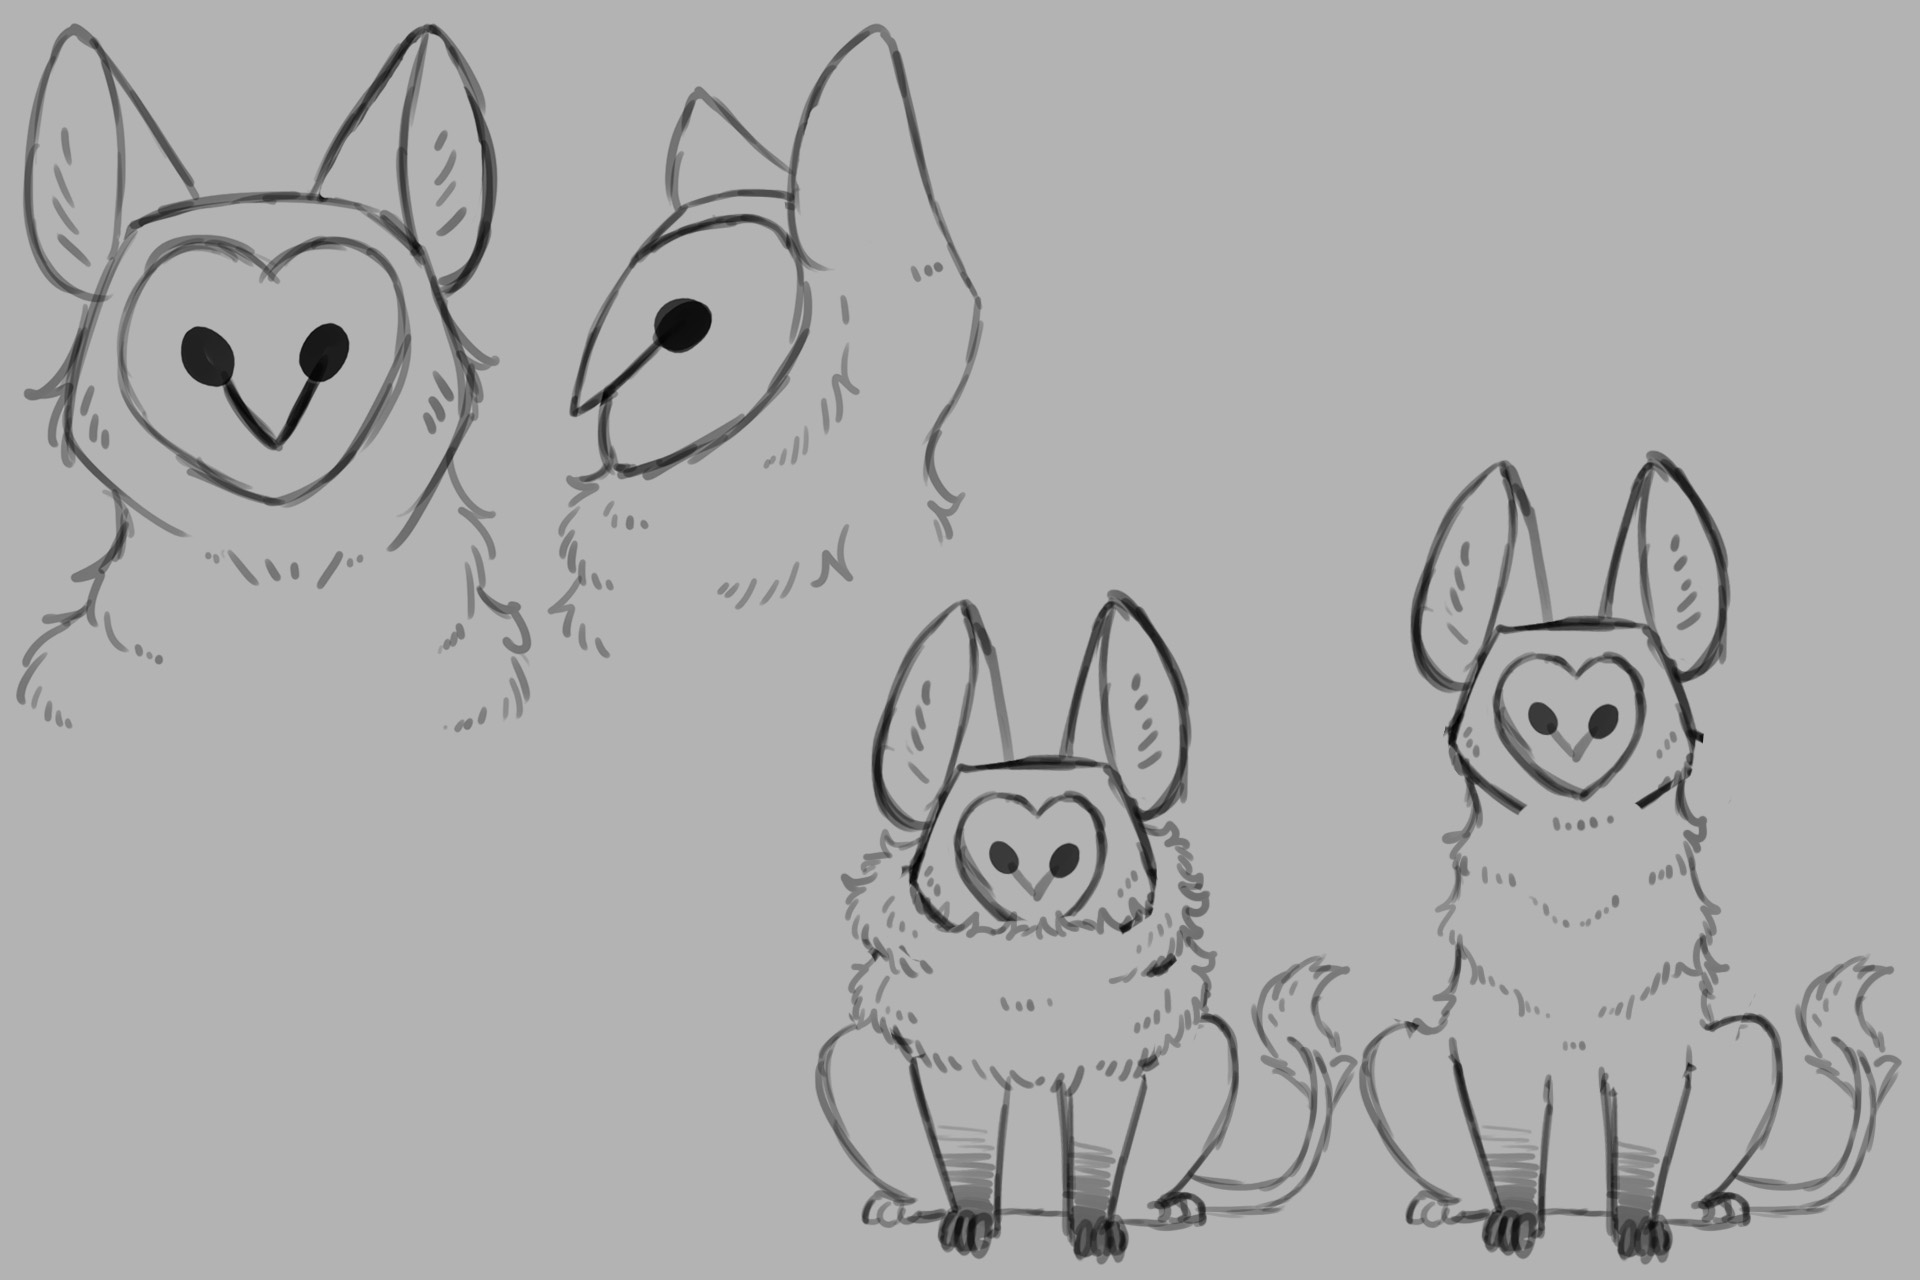 Griffin Design Exploration